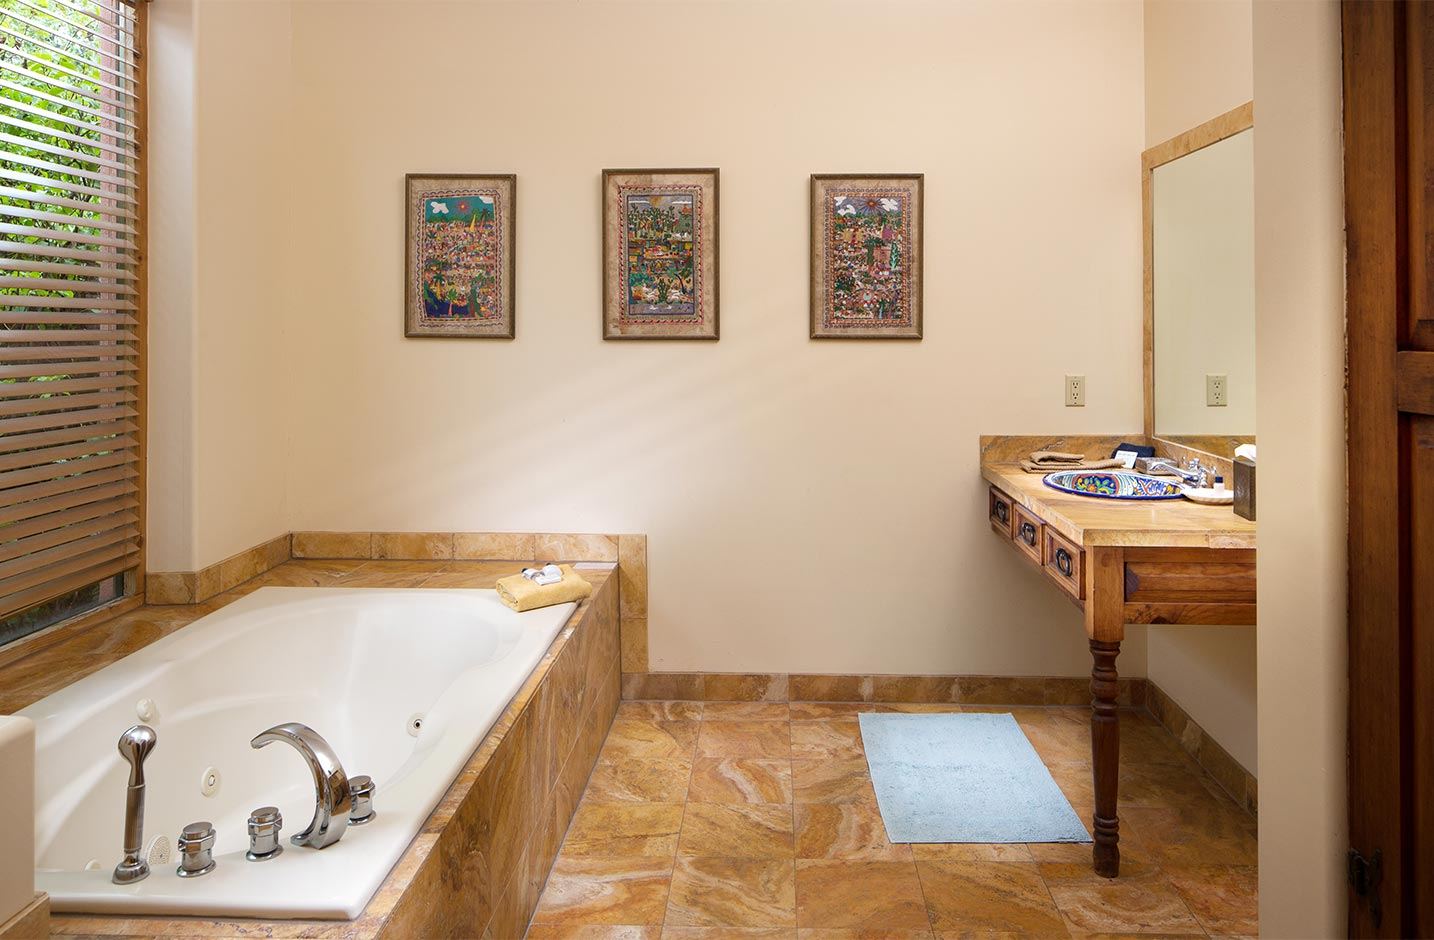 A large soaking tub with a mirror and sink